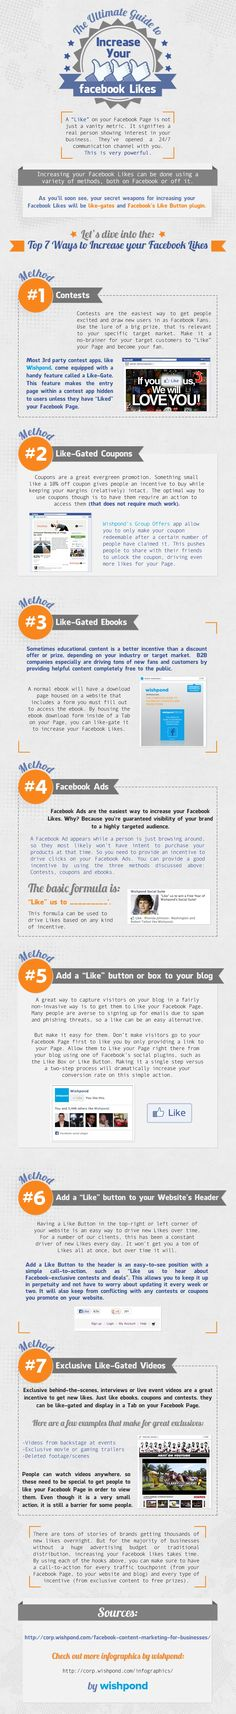 7 Ways To Boost Facebook Likes - Infographic